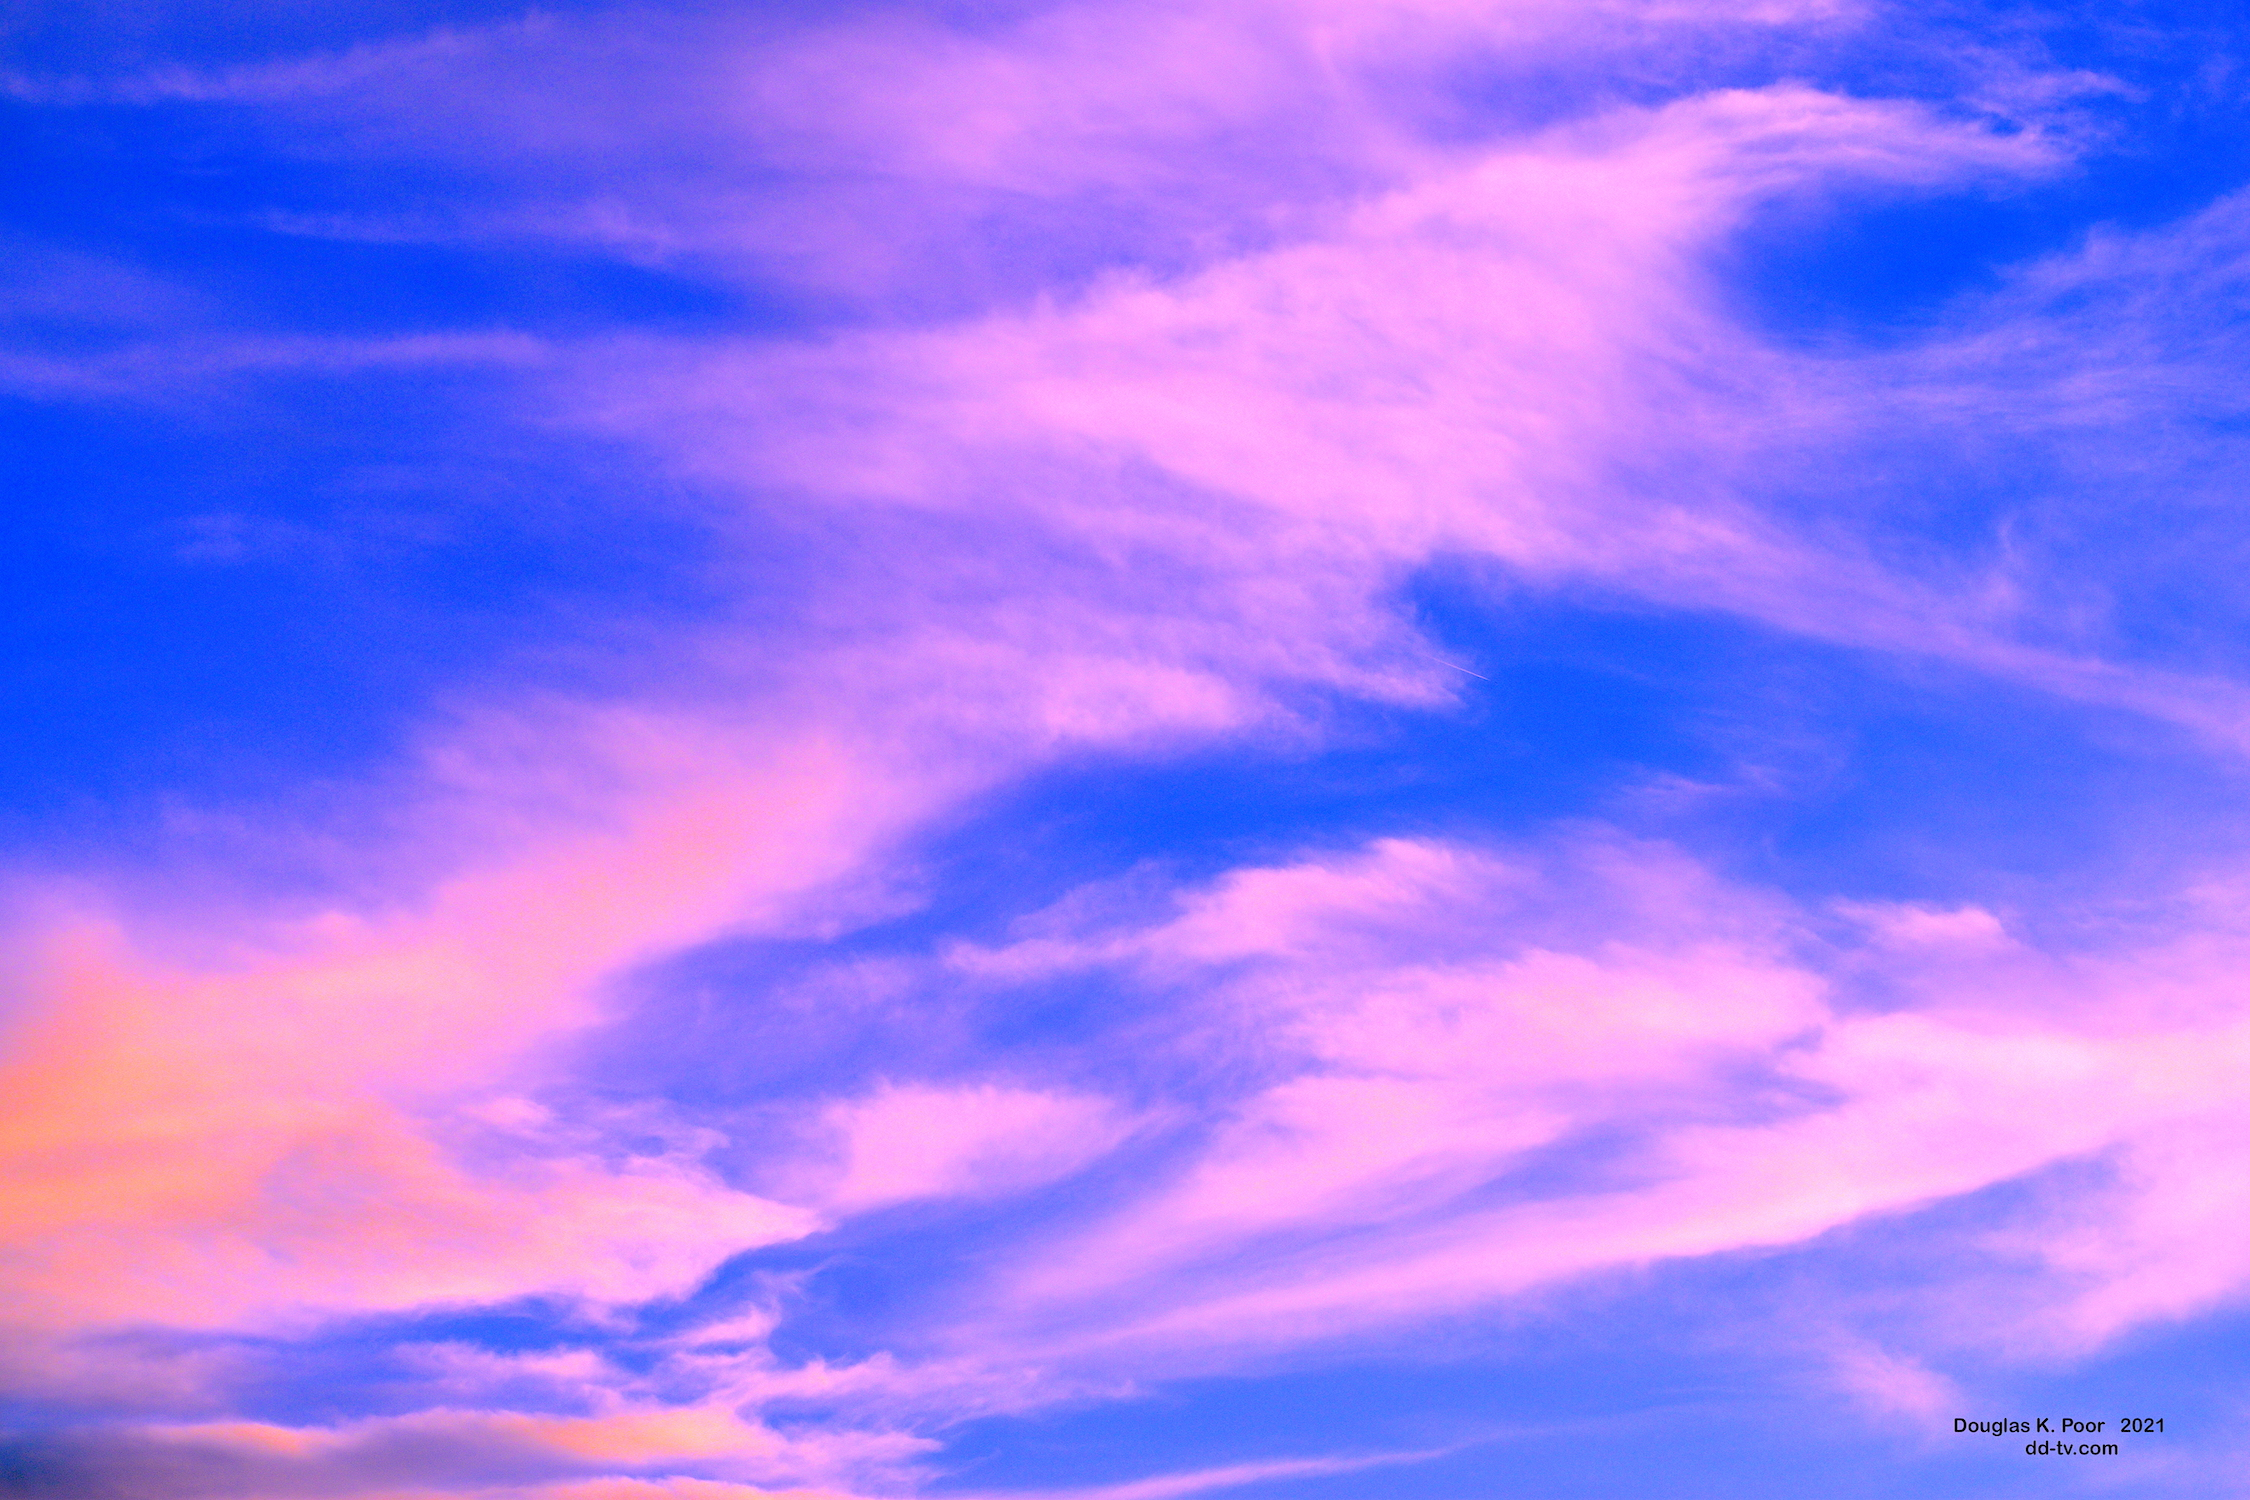 ================================================================================================================================================================COLORFUL-CLOUDS